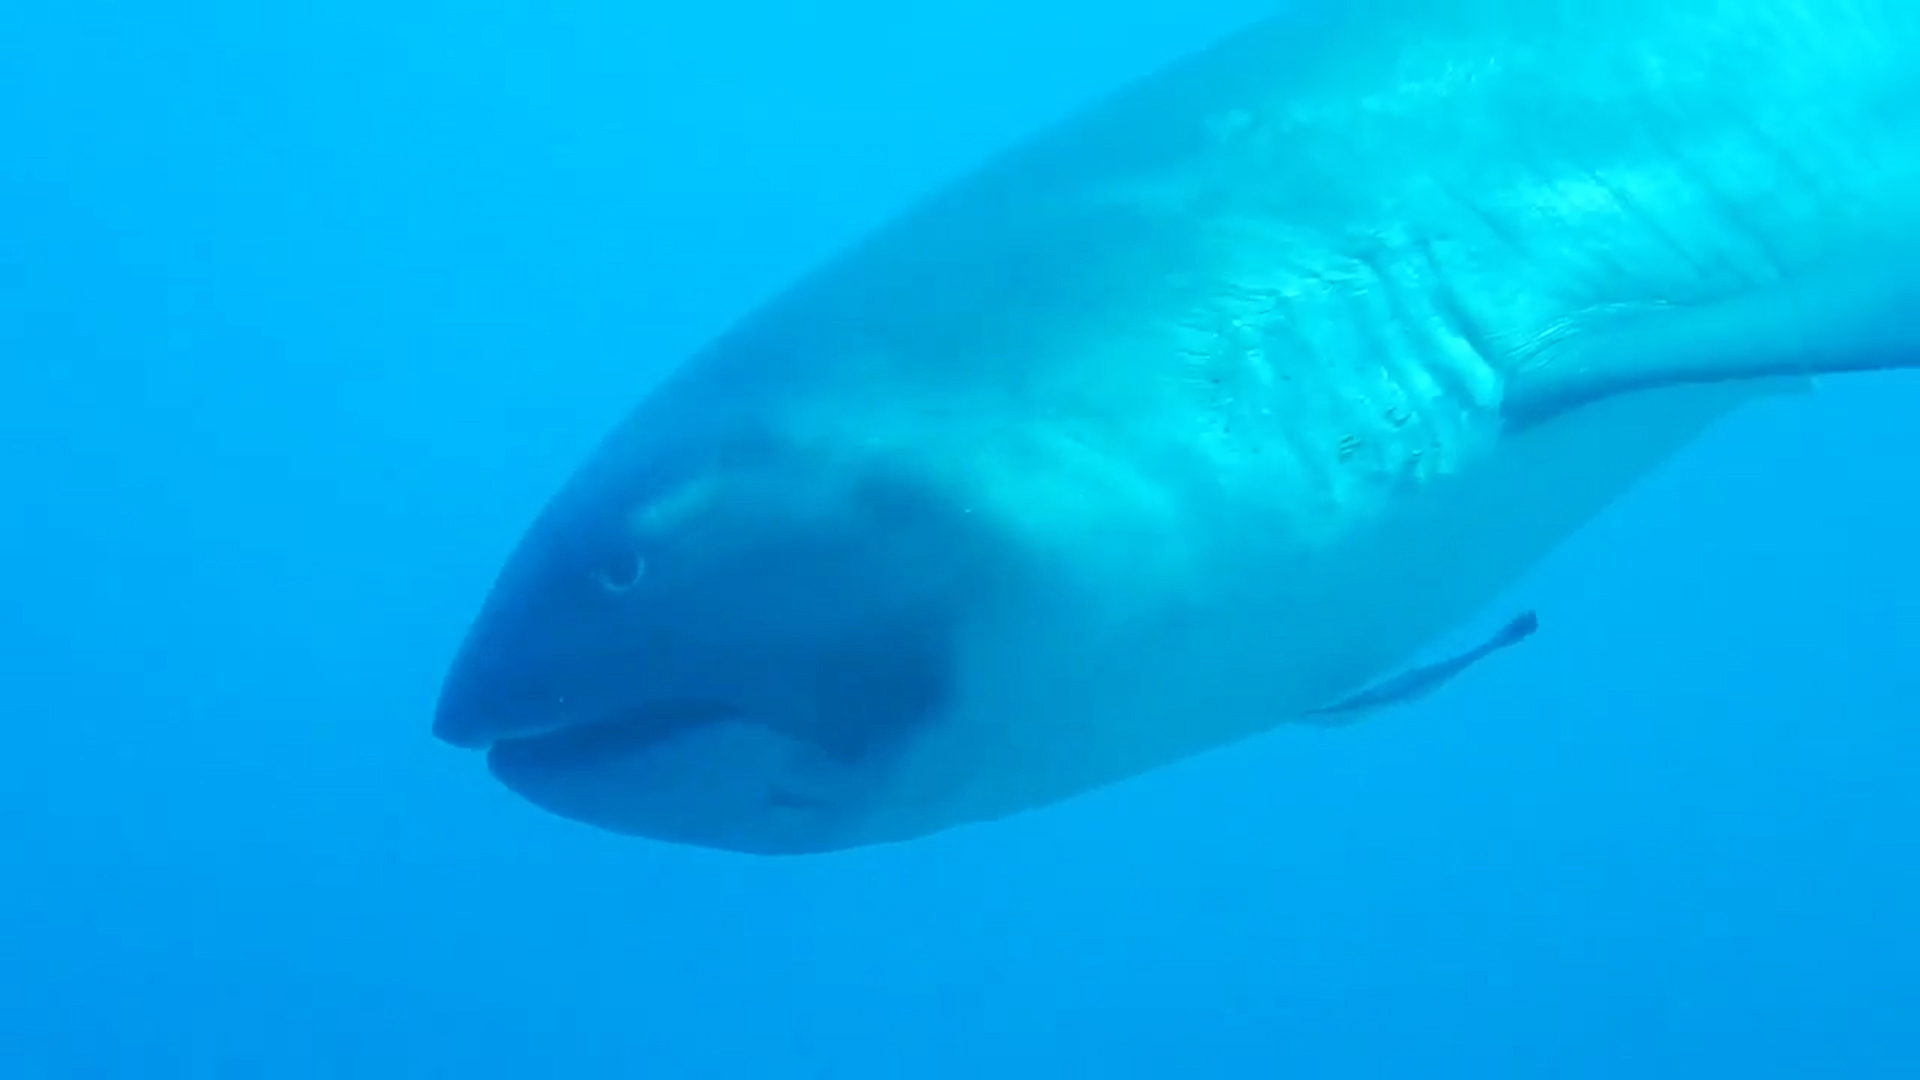 Extremely Rare Megamouth Shark Filmed - Nikon 2017-08-11 10:30